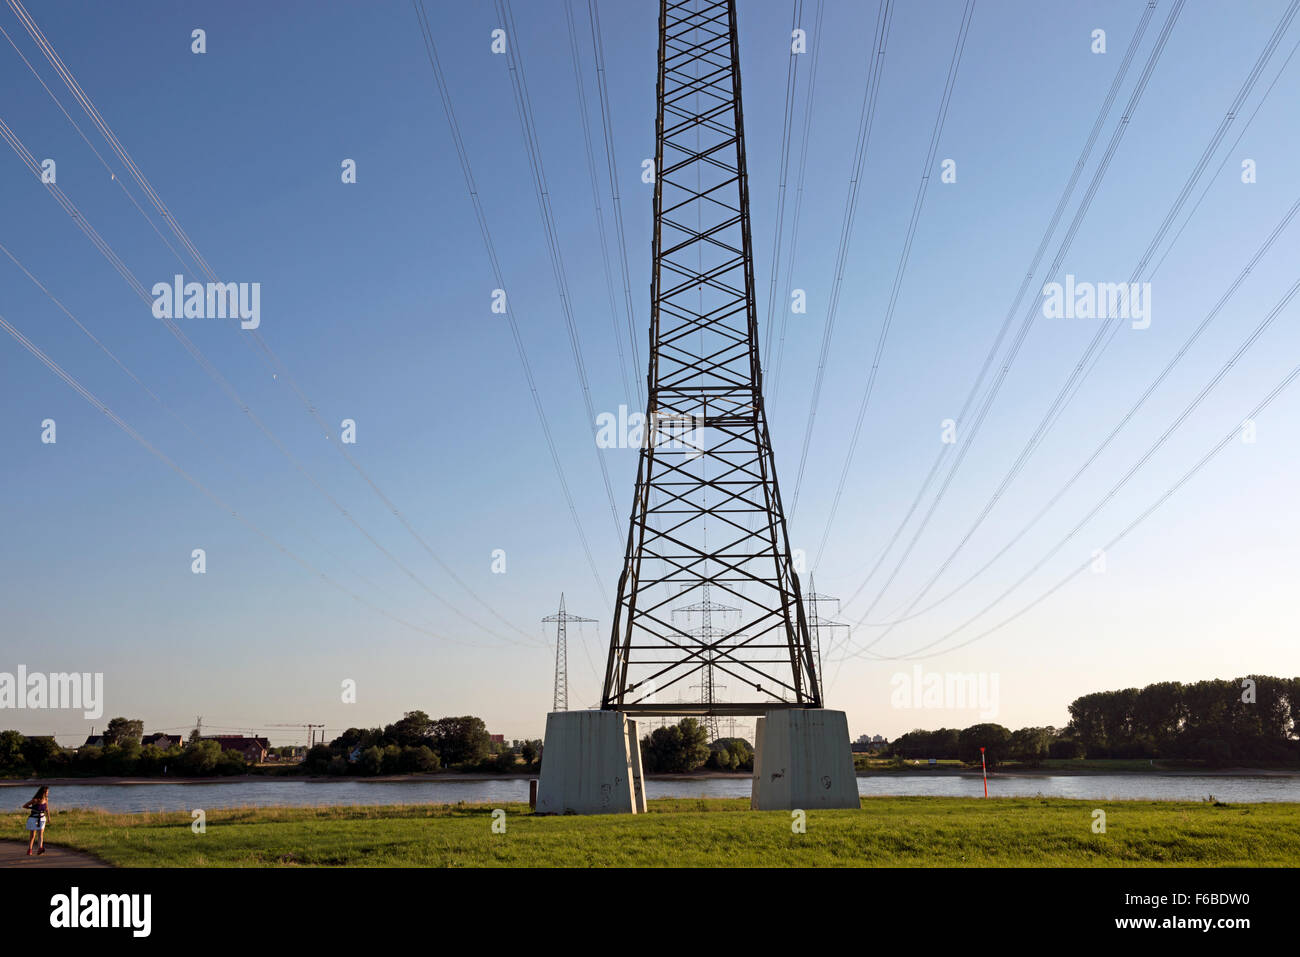 High-voltage electricity lines crossing the river Rhine, Rheindorf, Germany. - Stock Image